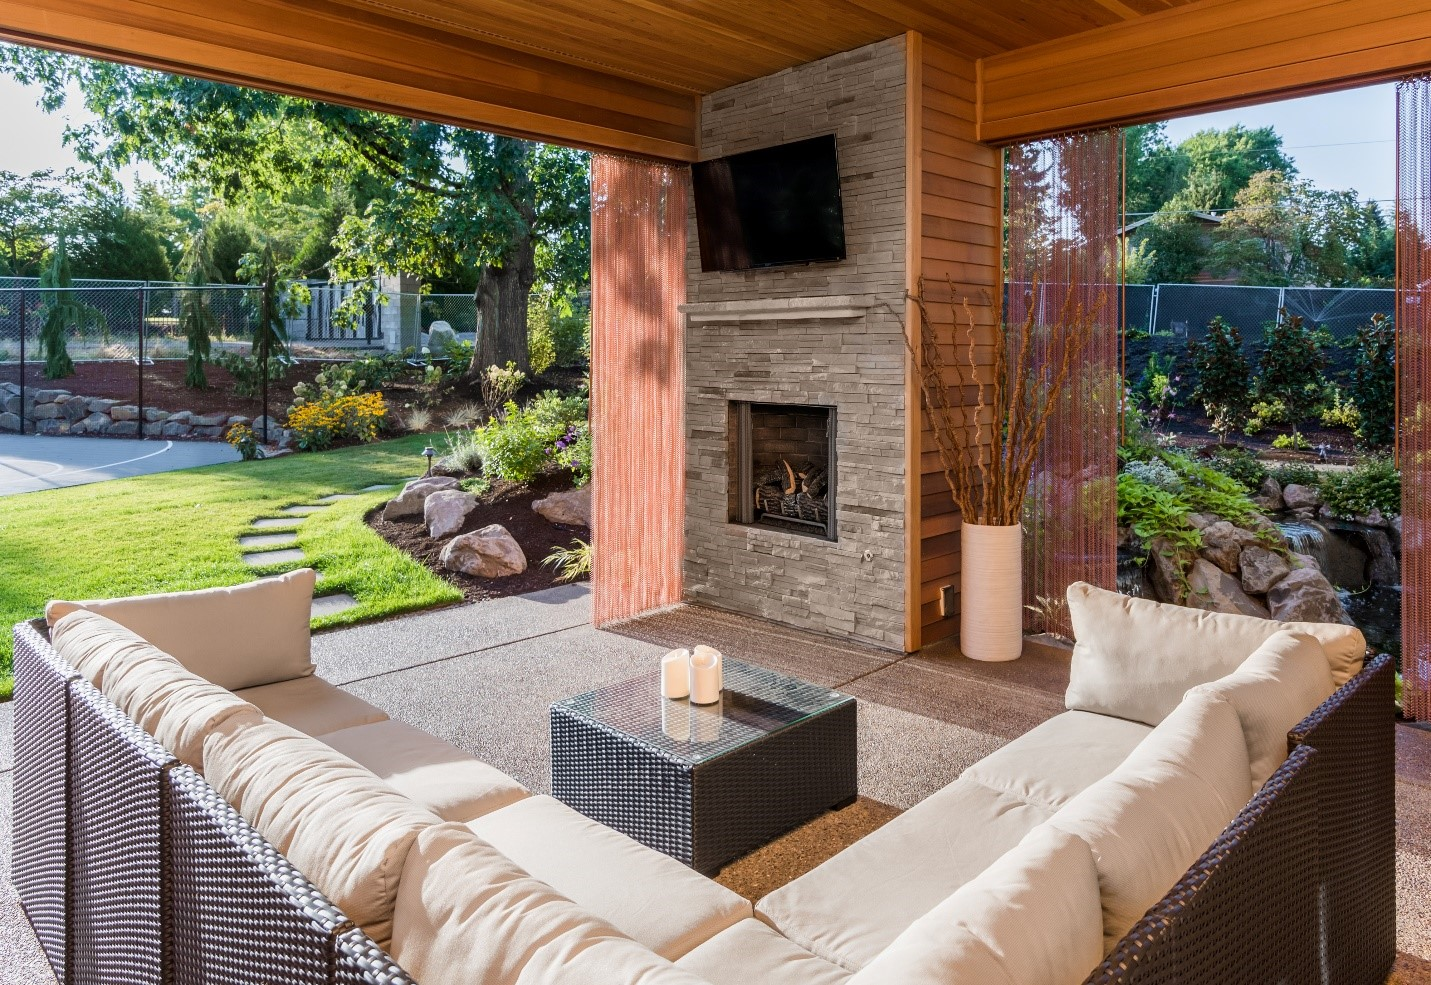 Is Your Home Ready for Outdoor Entertaining?